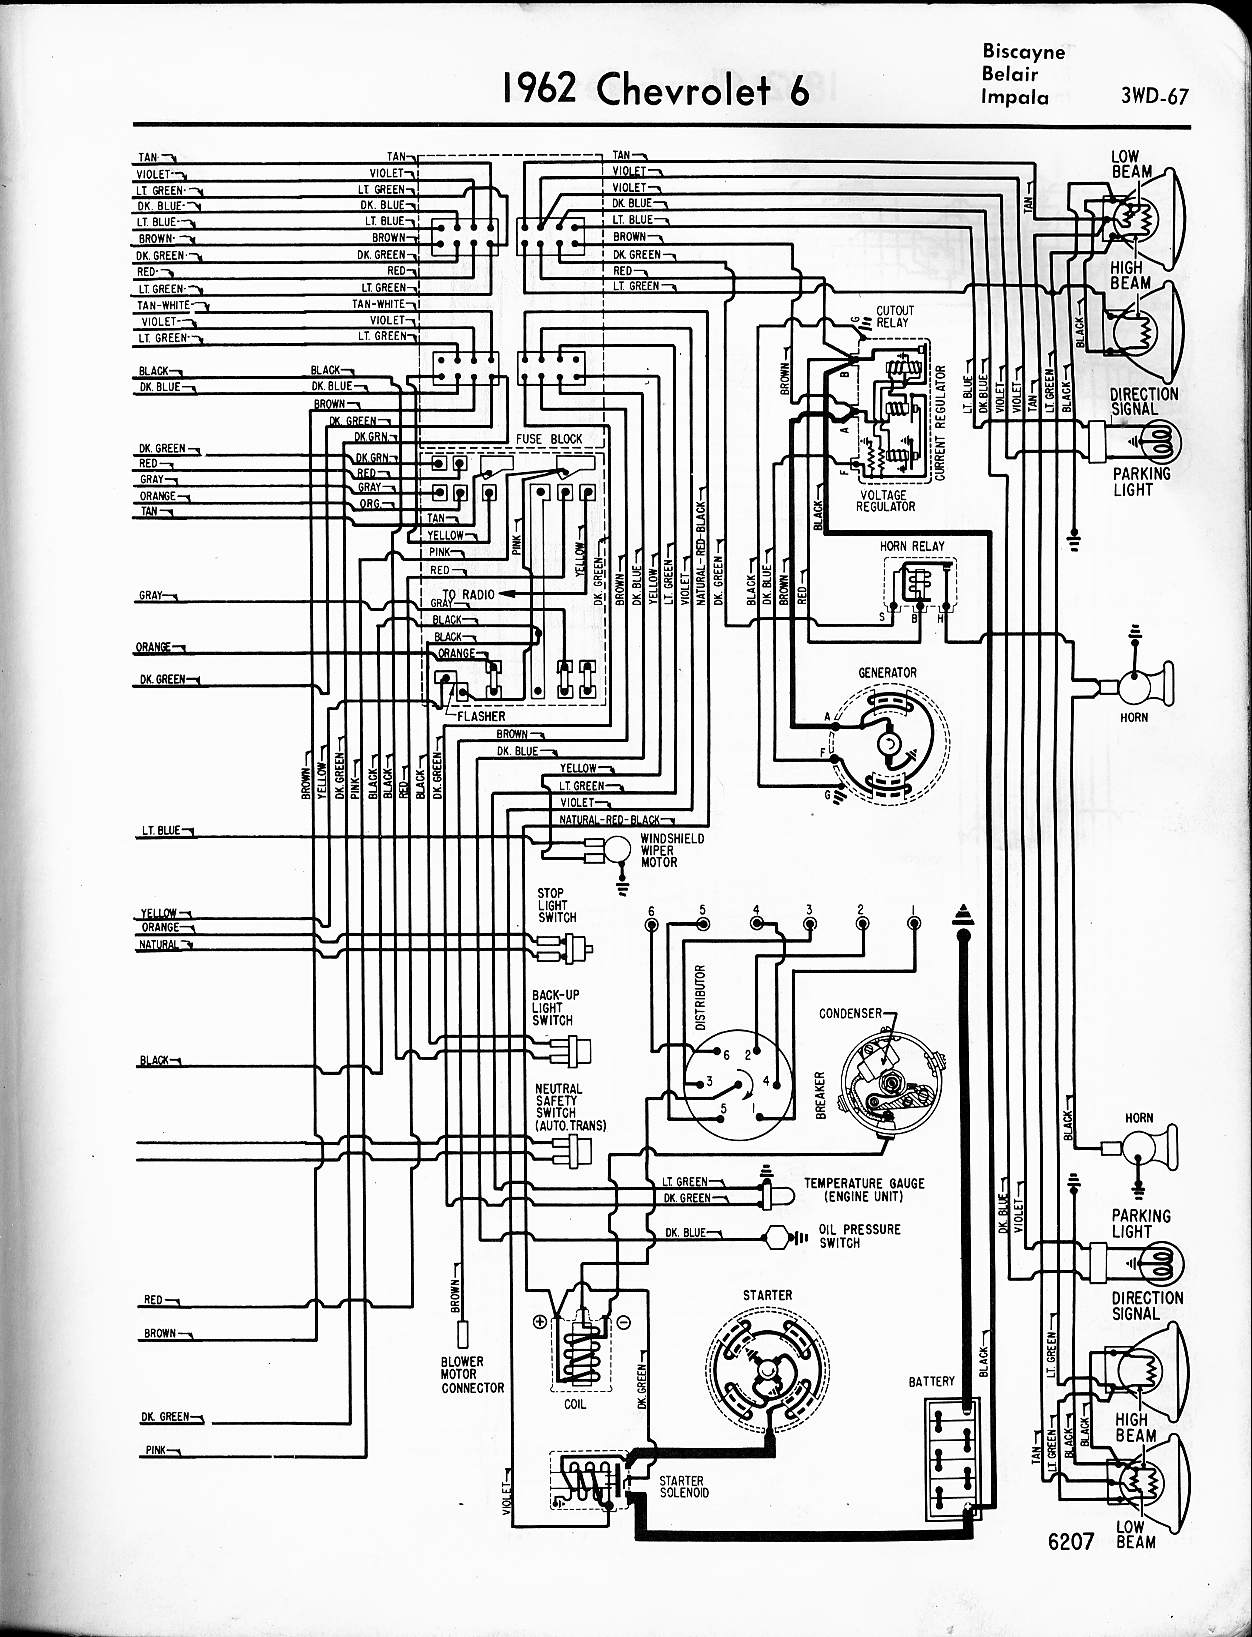 98 gmc suburban fuse diagram auto electrical wiring diagram 2001 GMC Yukon 62 chevy heater wiring diagram 62 chevy steering column